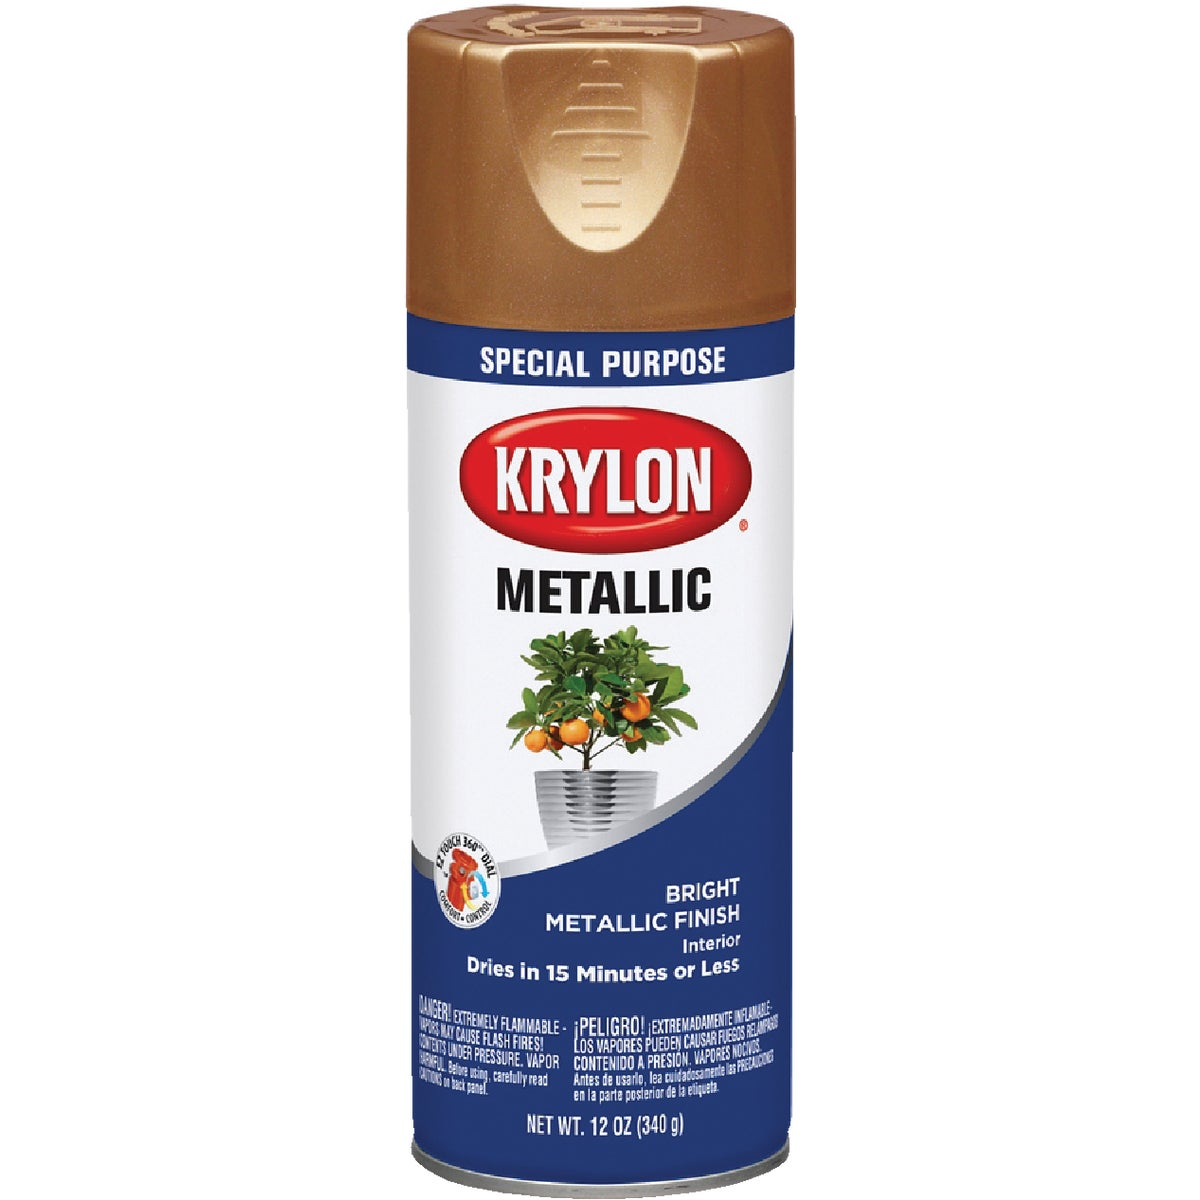 COPPER METLC SPRAY PAINT - 1709 by Krylon/consumer Div